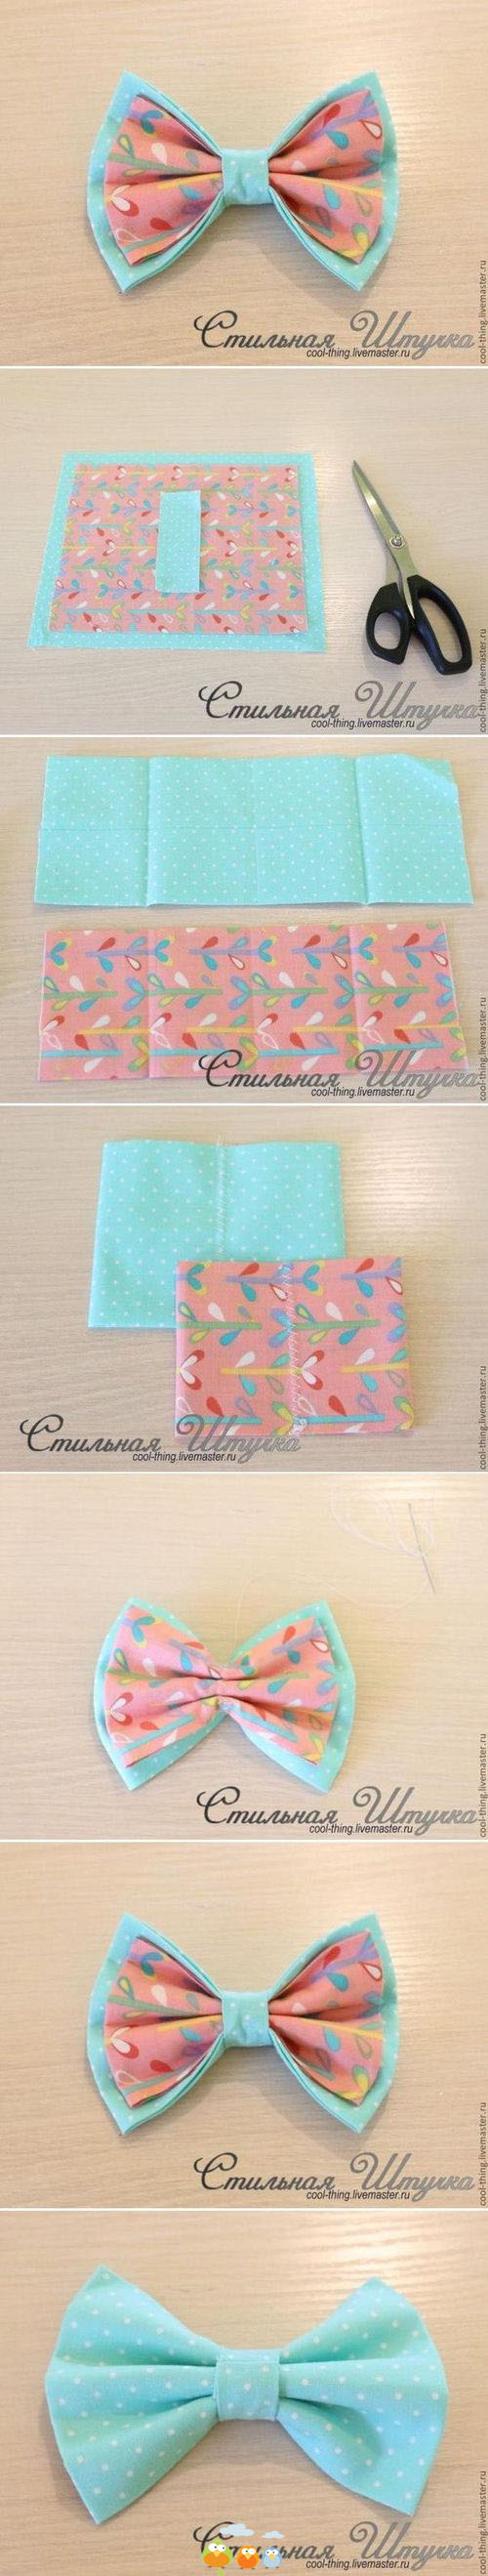 fabric bow ideas